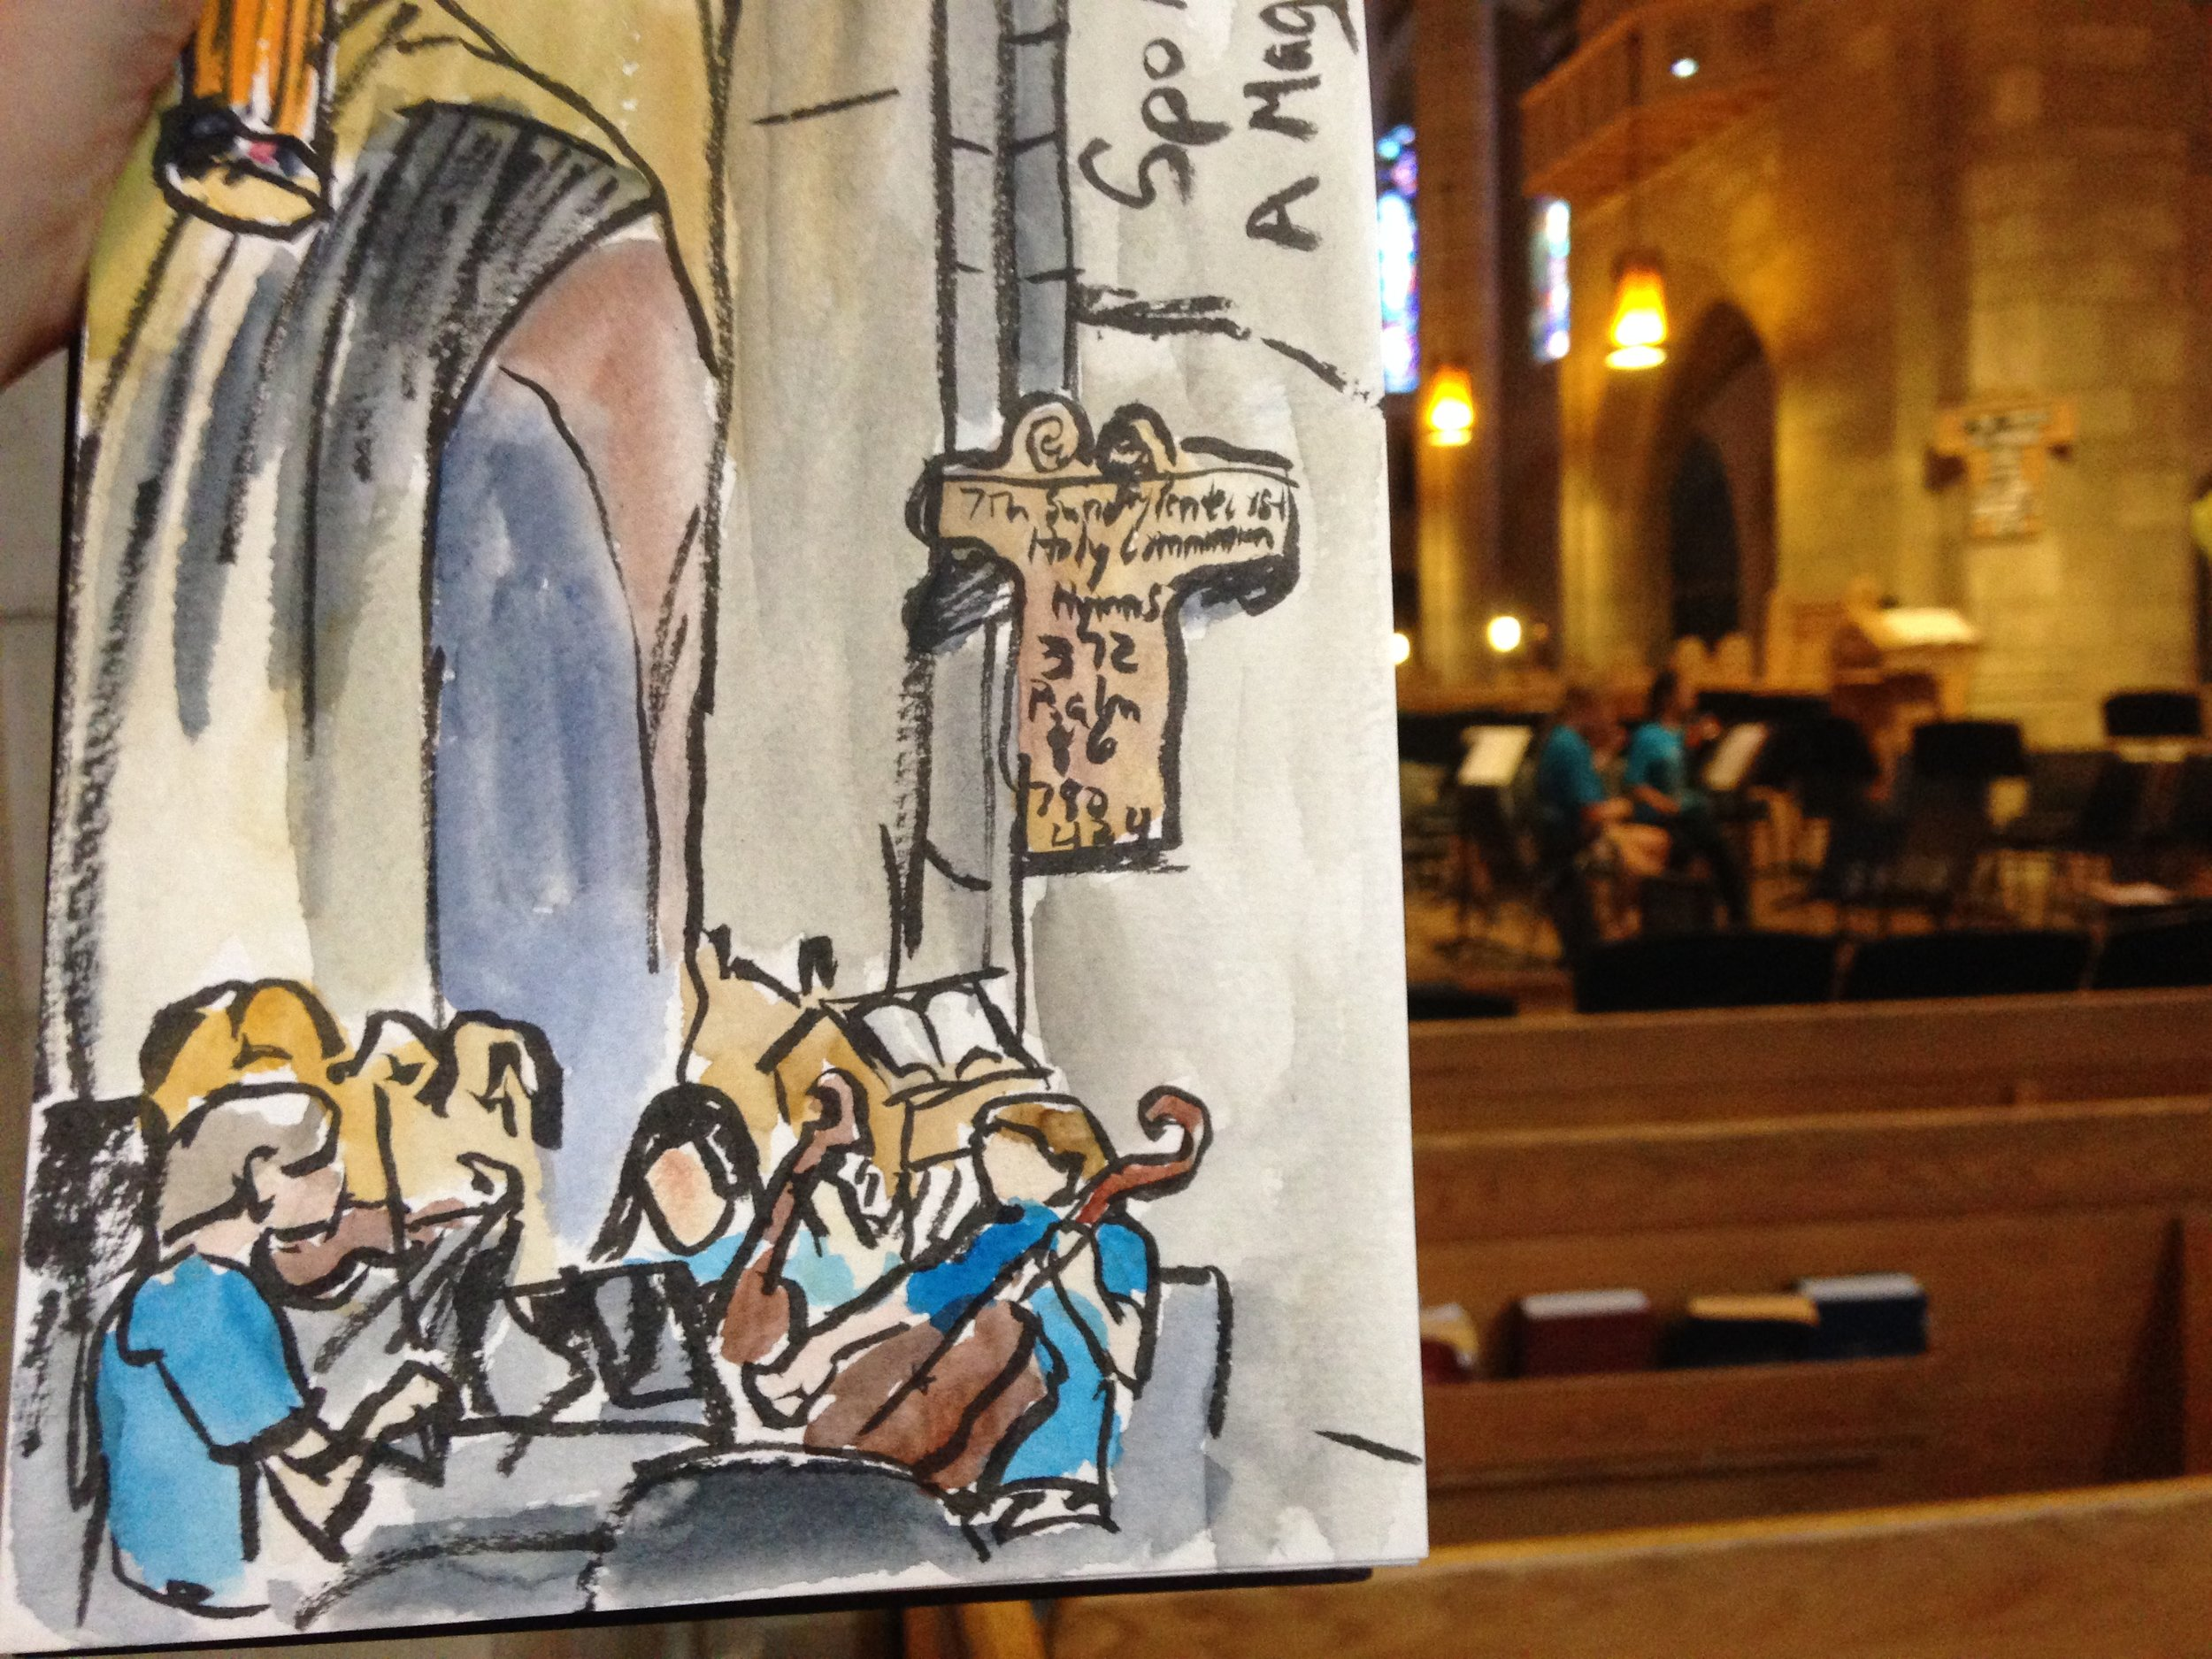 Spokane Youth Symphony practicing in the nave of the Cathedral. I stumbled upon this by accident and it was fabulous to paint with live music accompaniment!